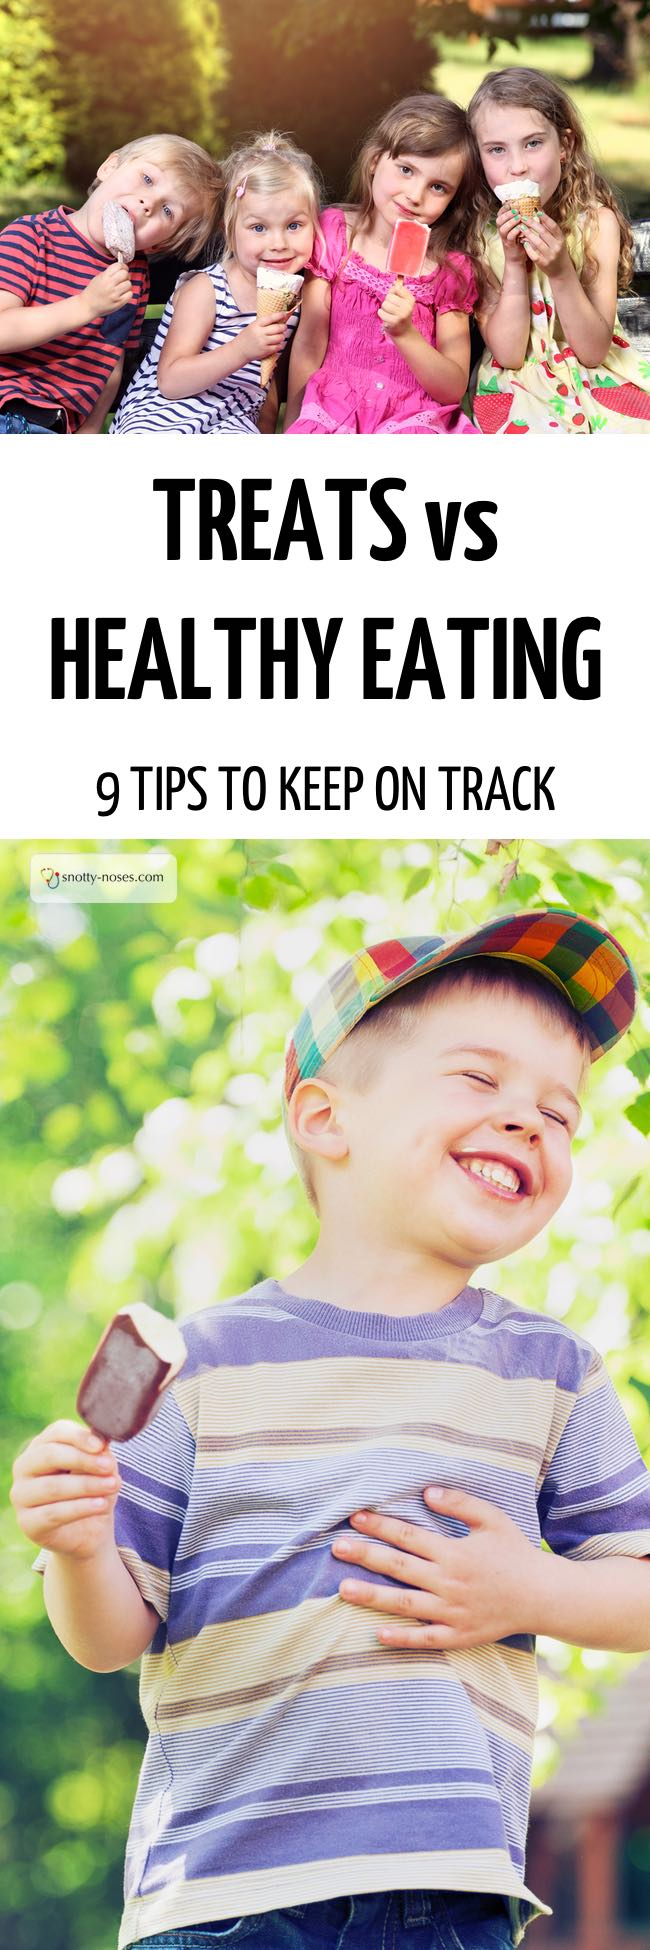 Treats vs Healthy  Snacks. How to Combine Treats and Healthy Eating for Kids